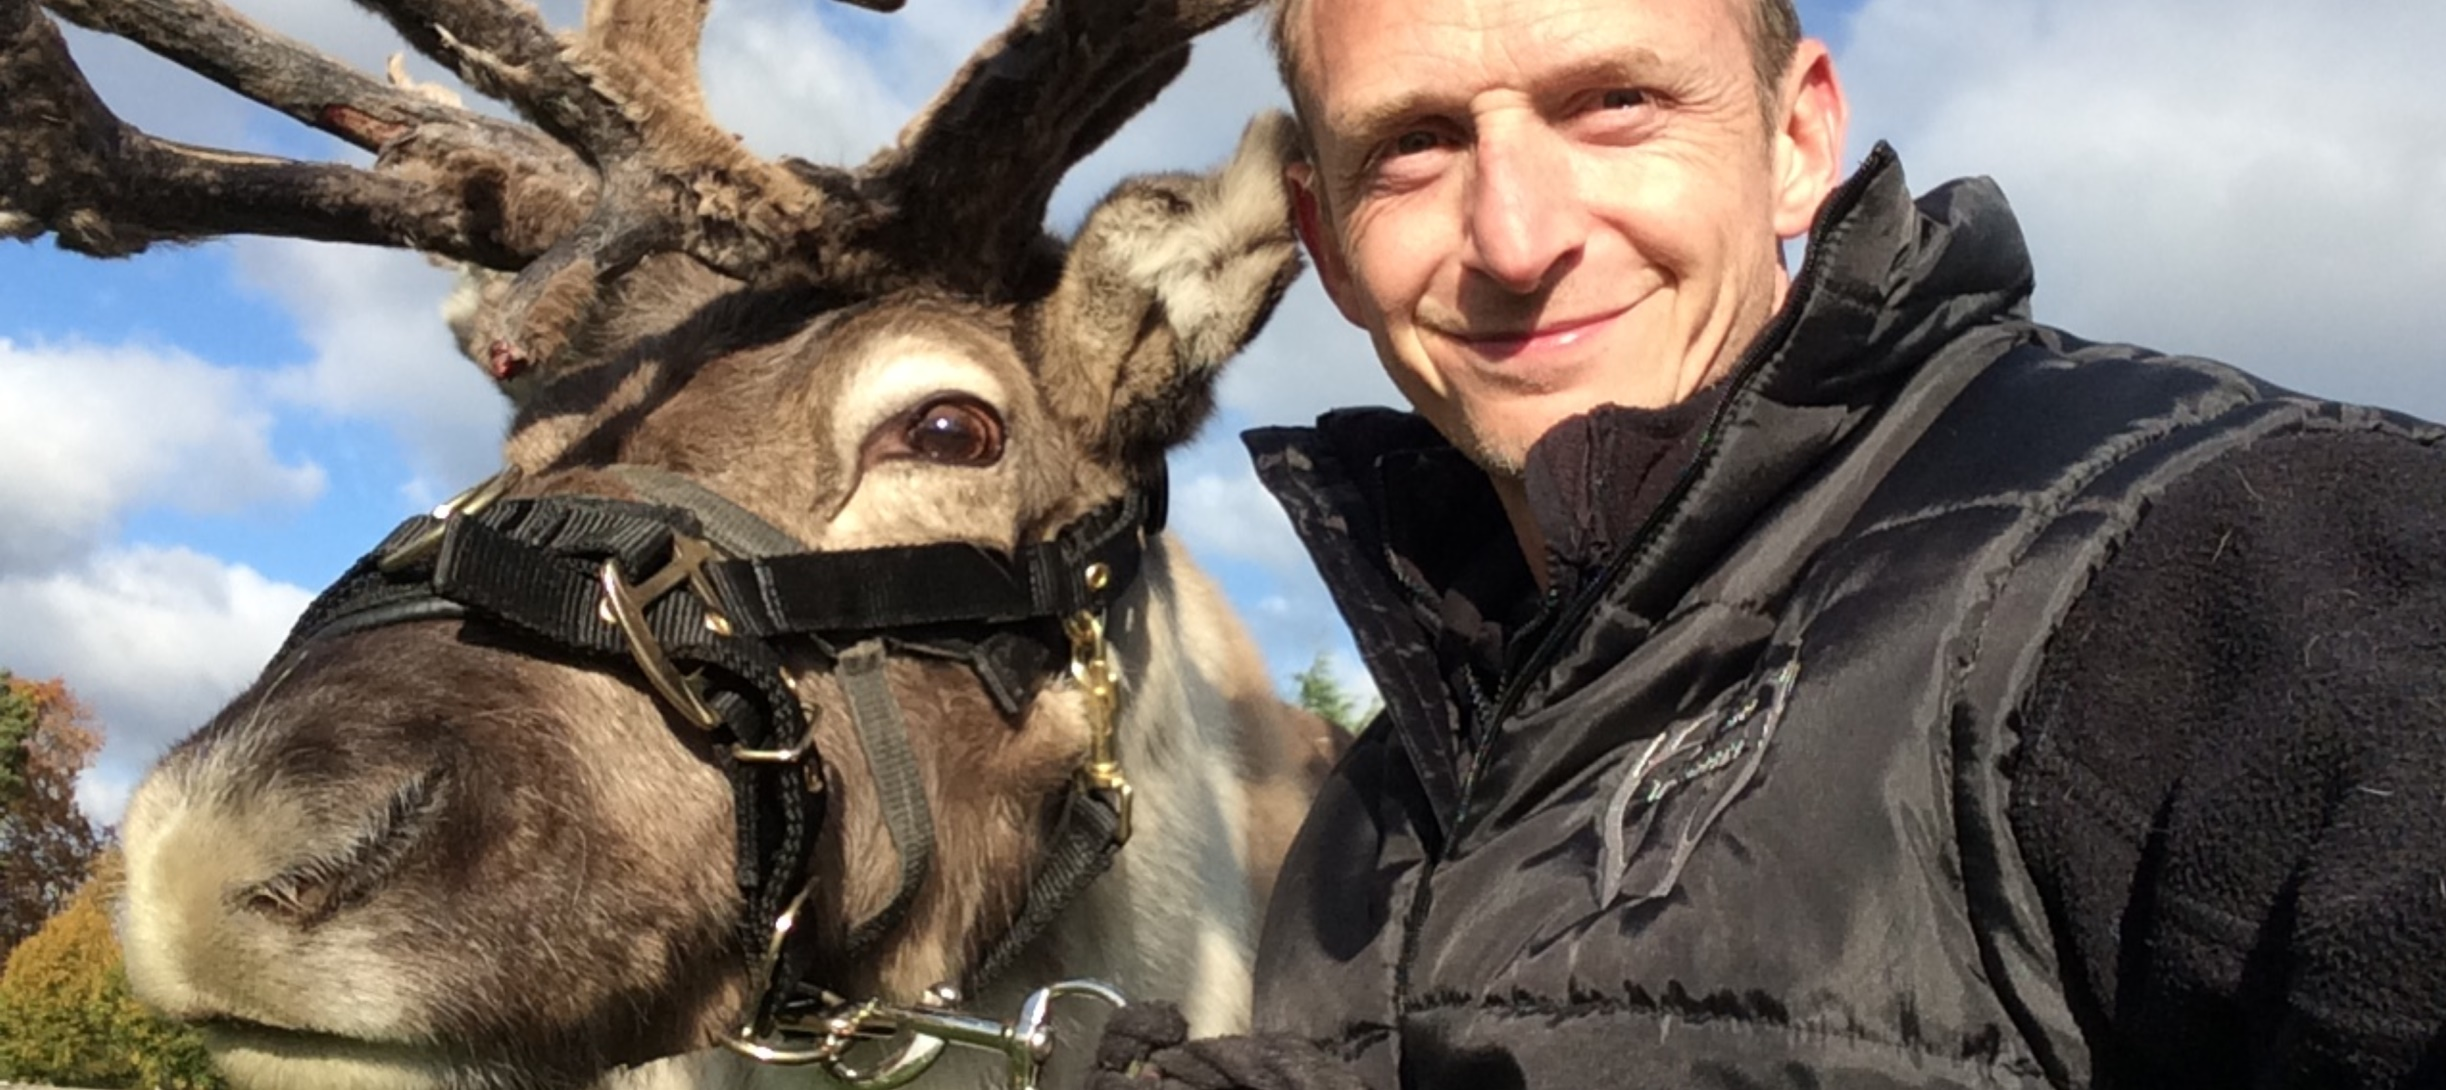 The Reindeer Whisperer Phil